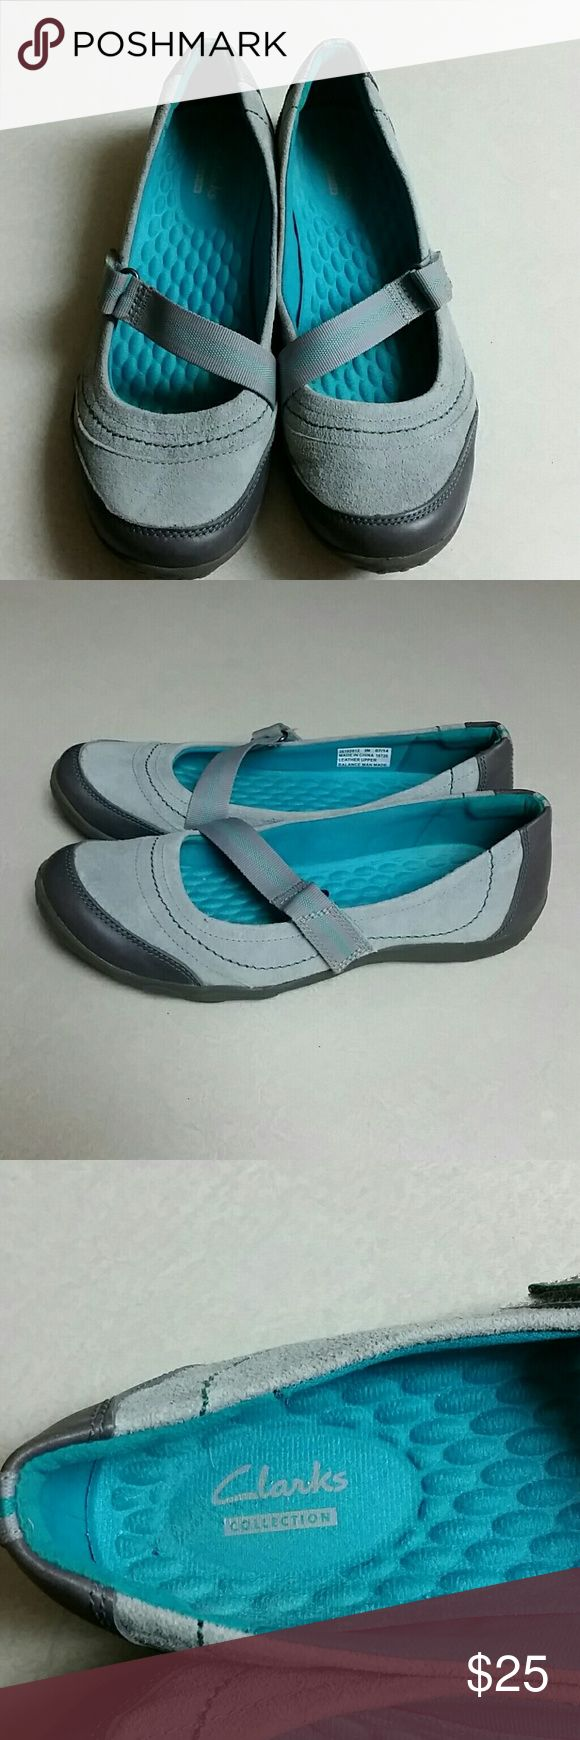 Clark shoes Turquoise blue/ash grey Clark shoes Clarks Shoes Flats & Loafers